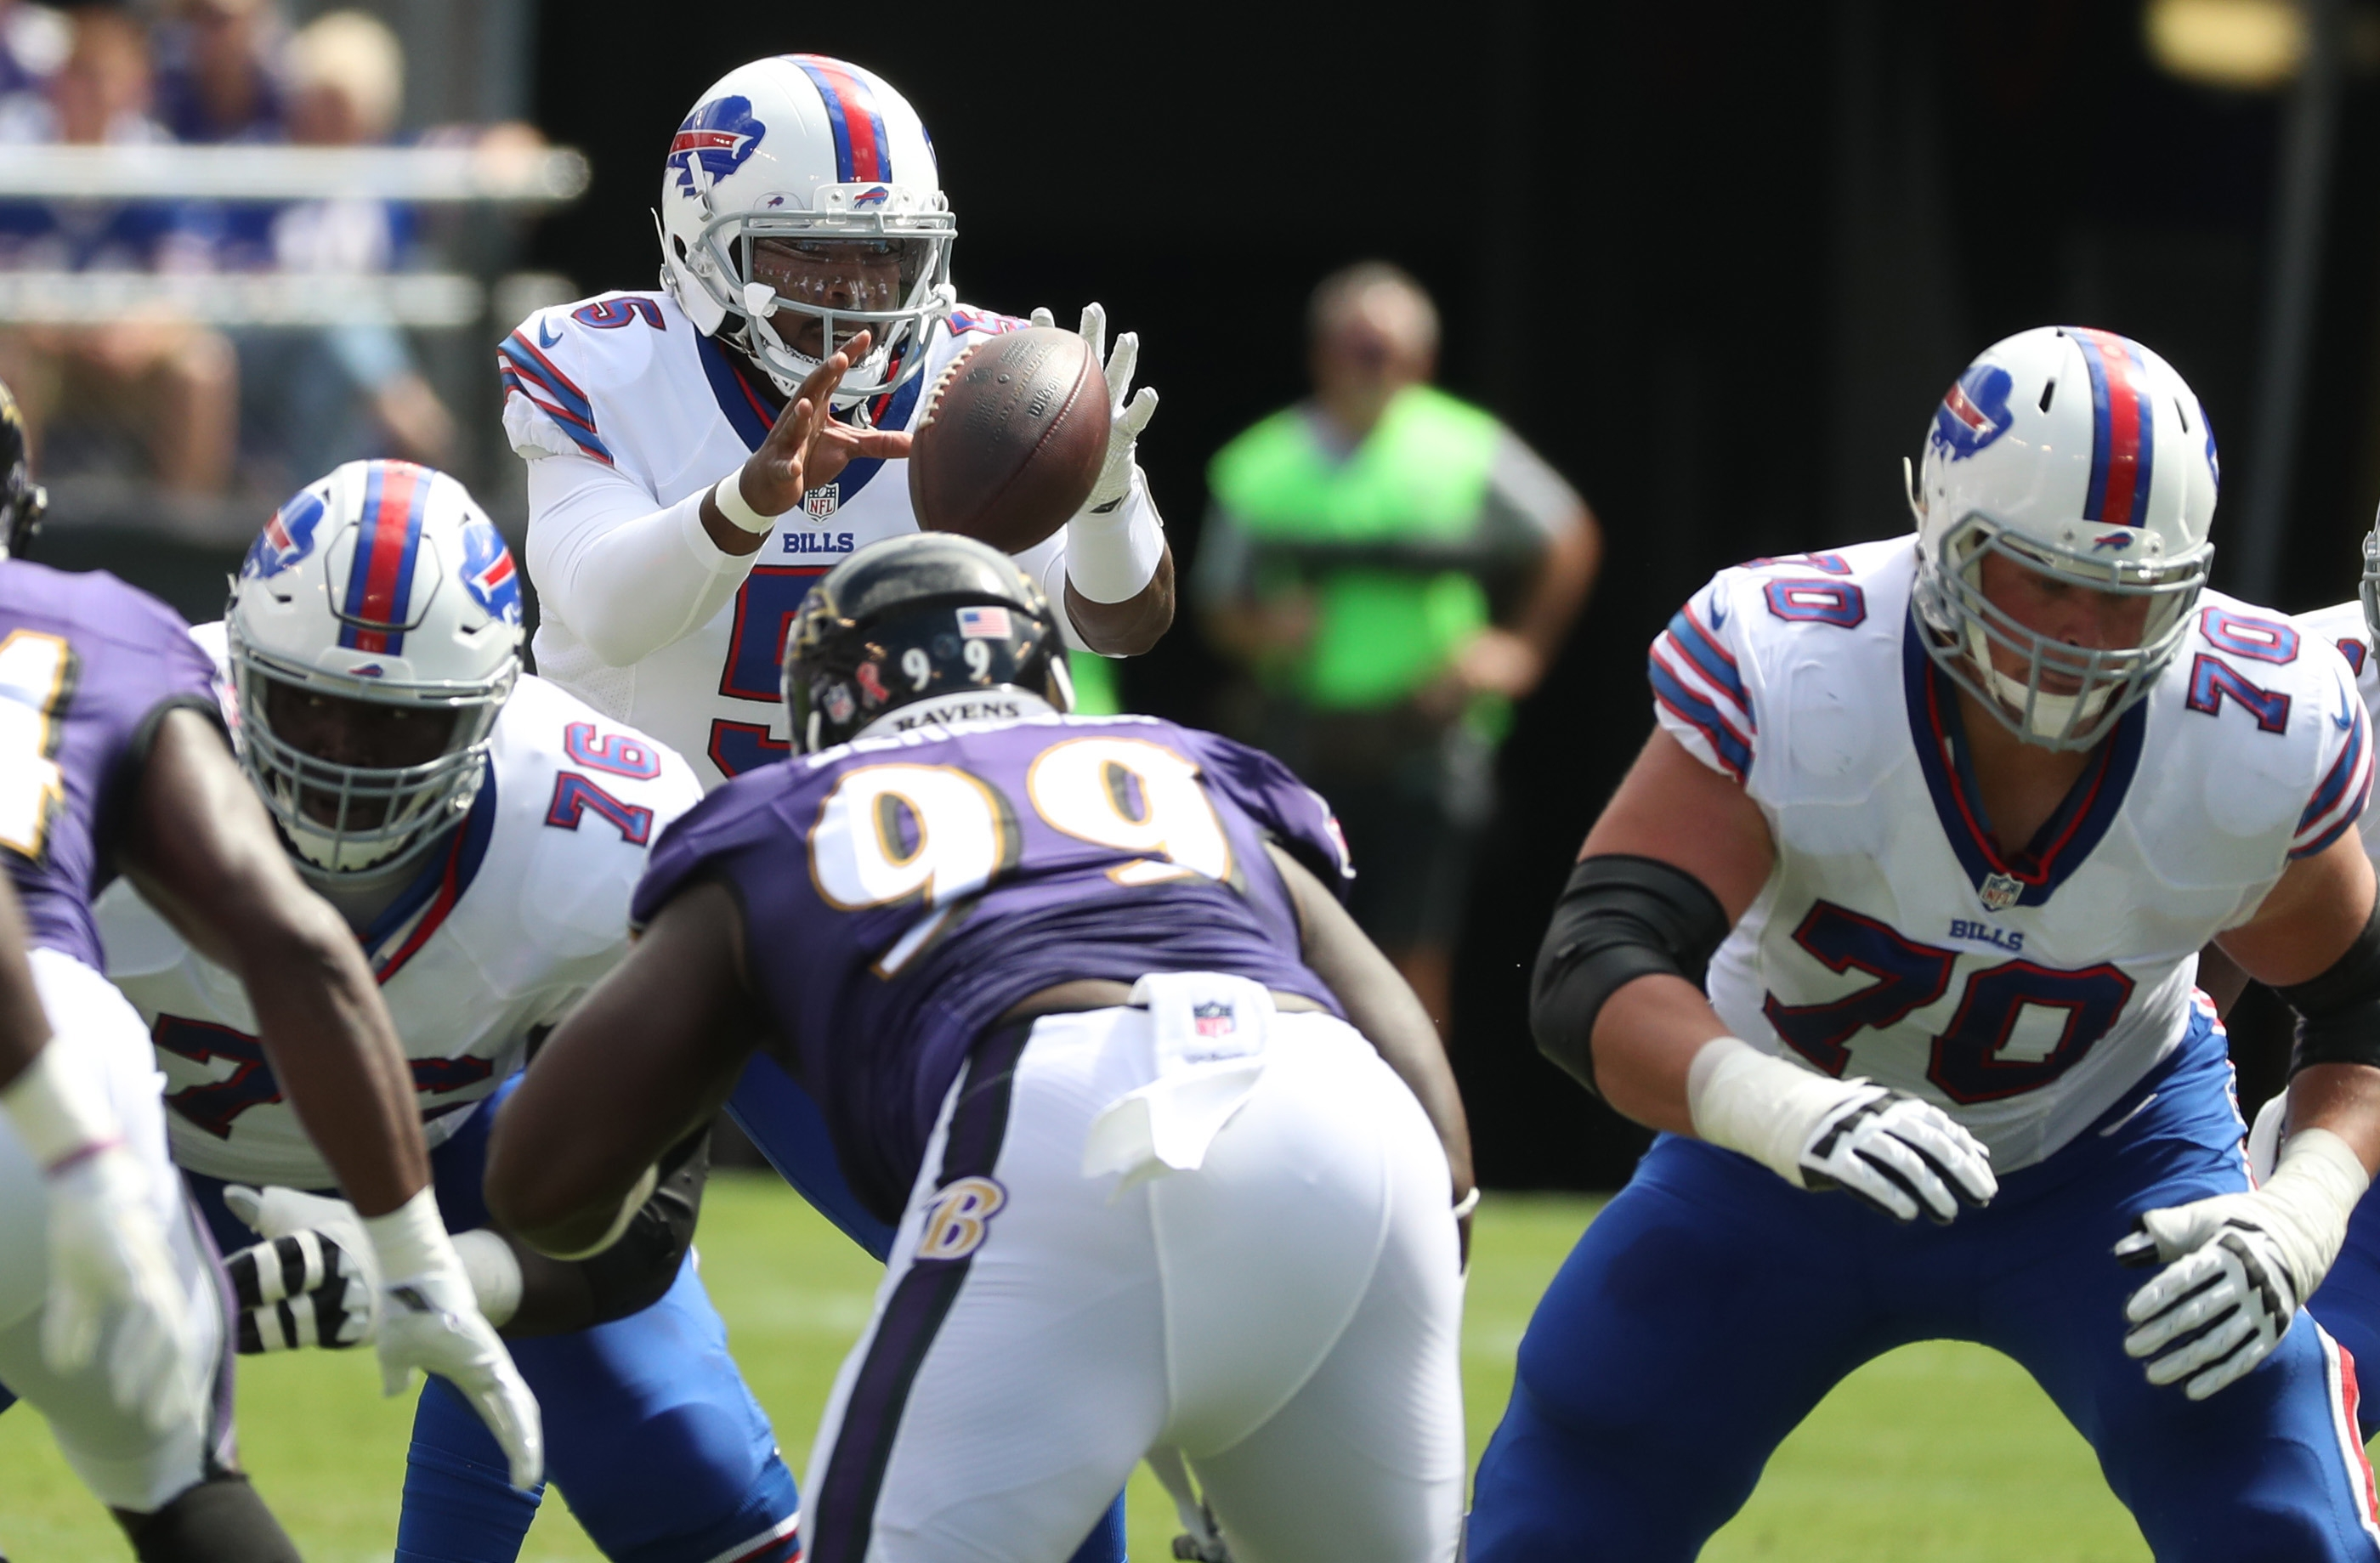 Bills quarterback Tyrod Taylor took just 48 offensive snaps during Sunday's game against the Baltimore Ravens.